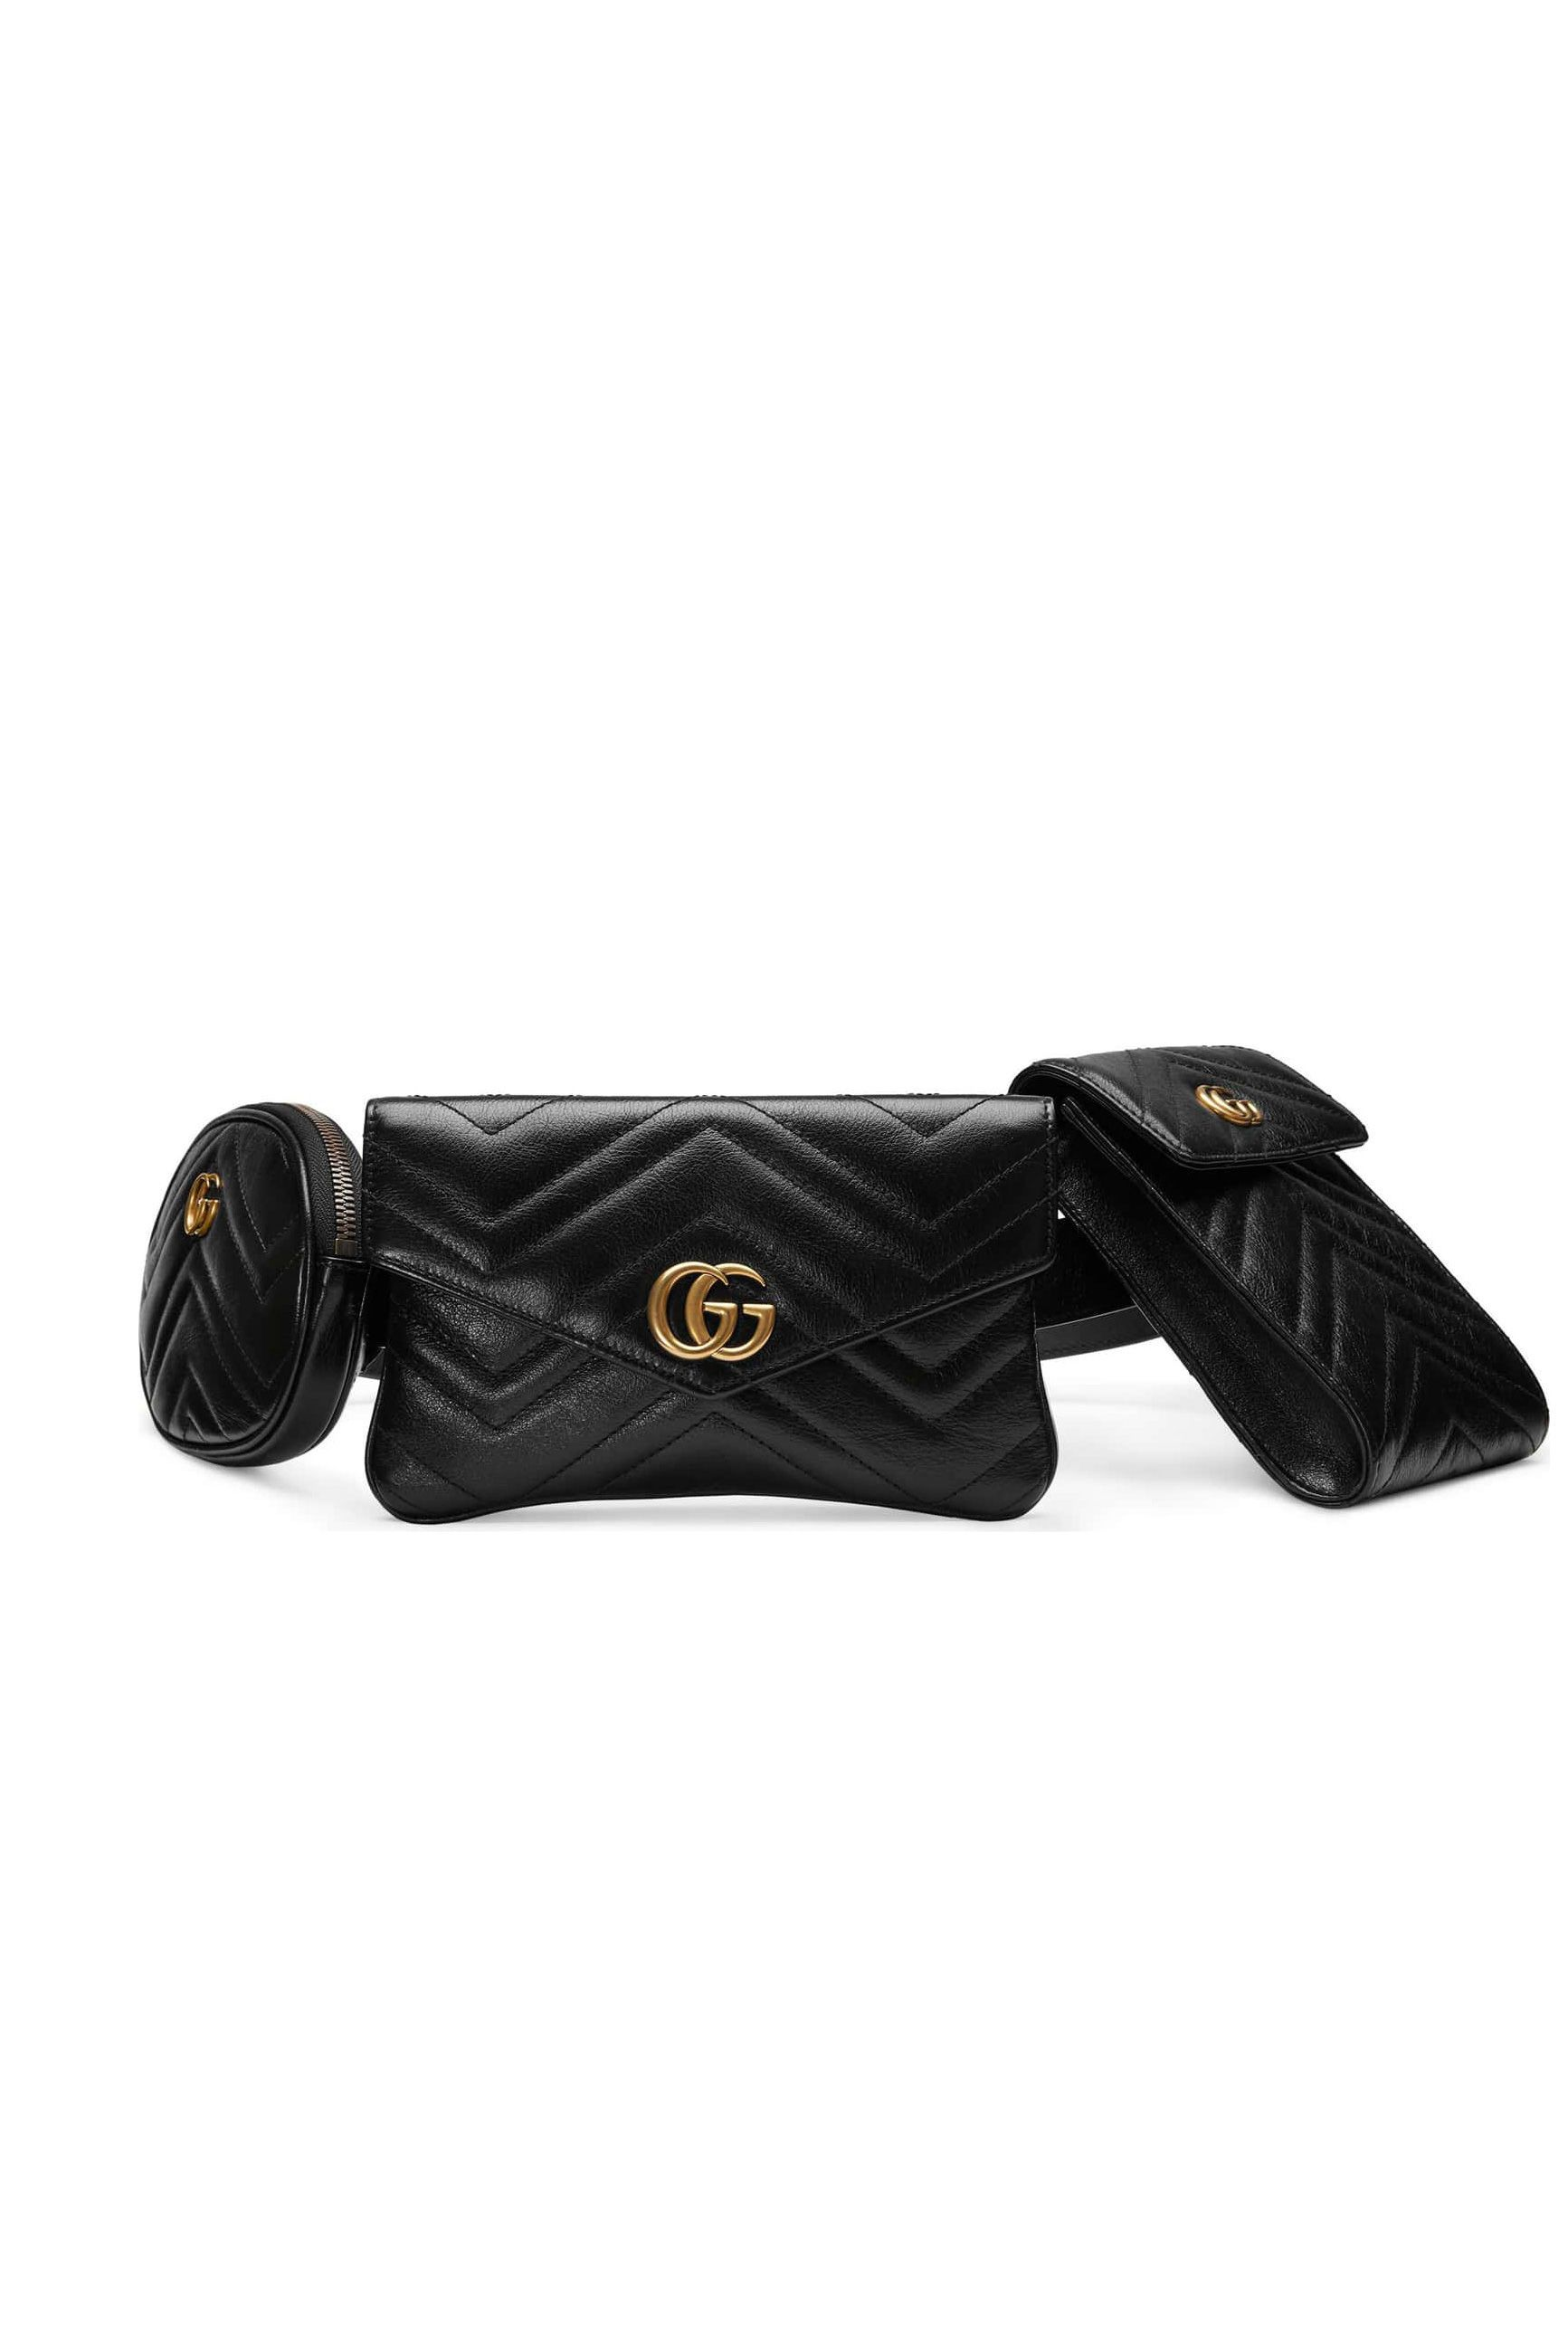 168ec106773c 15 Fanny Packs and Waist Bags to Buy Now